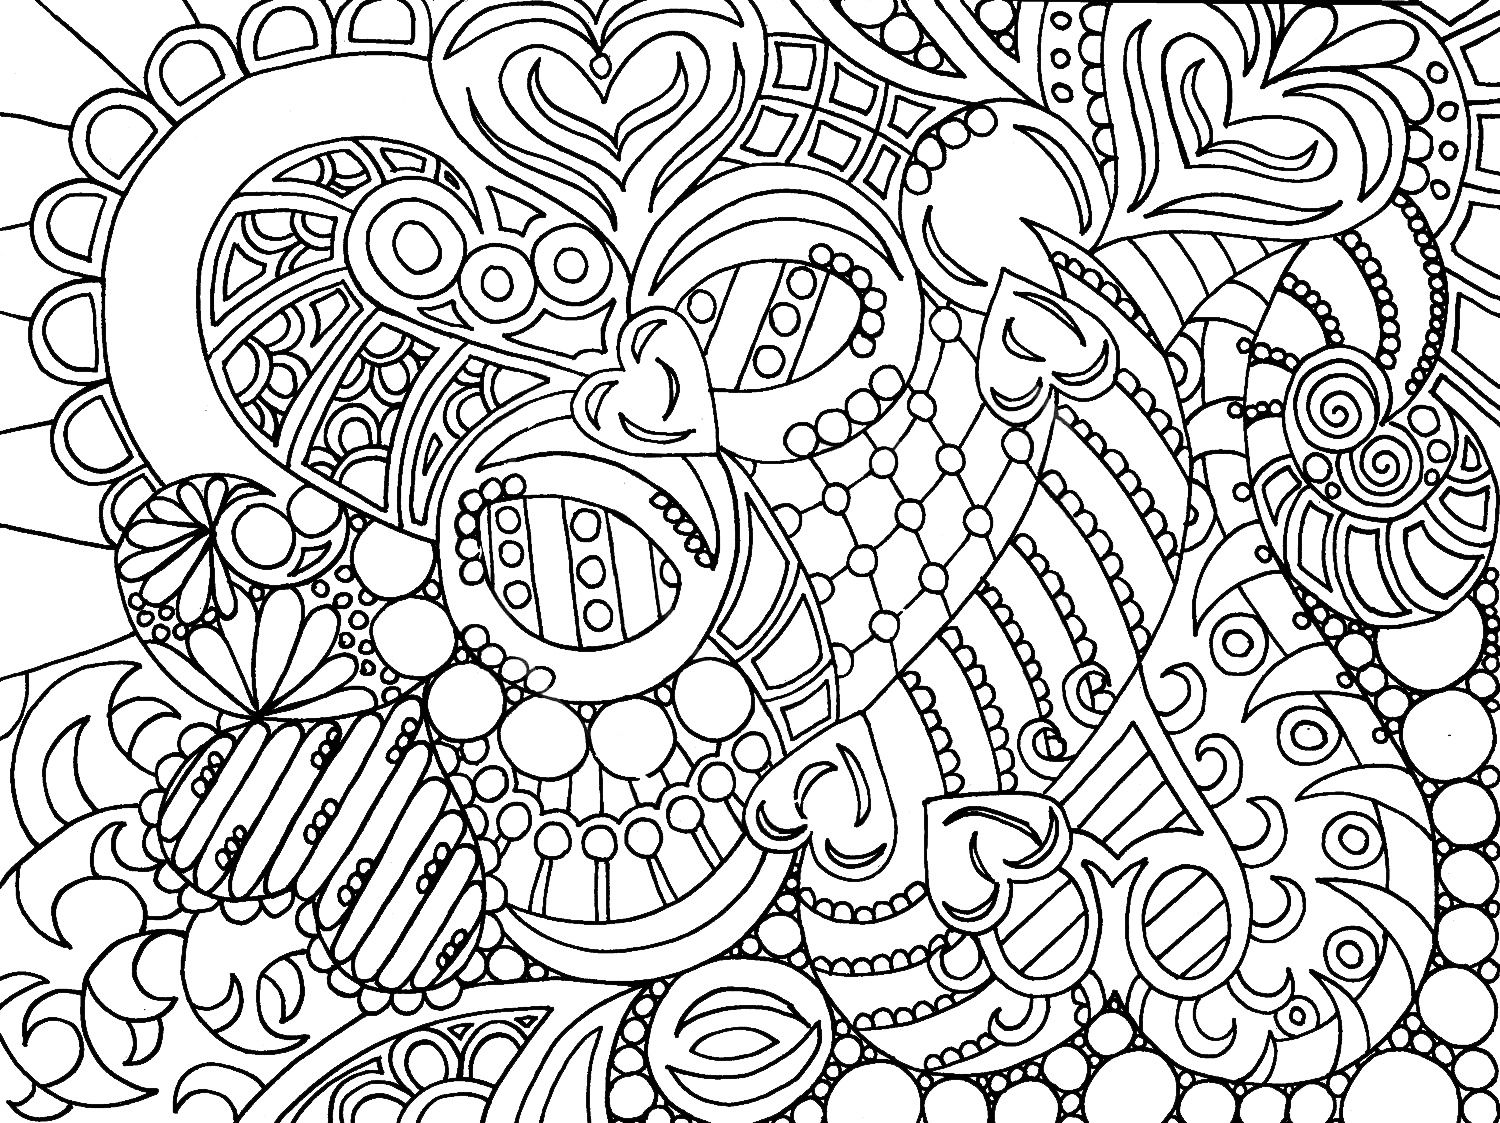 Stress relieving coloring - Downloadable Colouring Pages For Relieving Stress And Anxiety